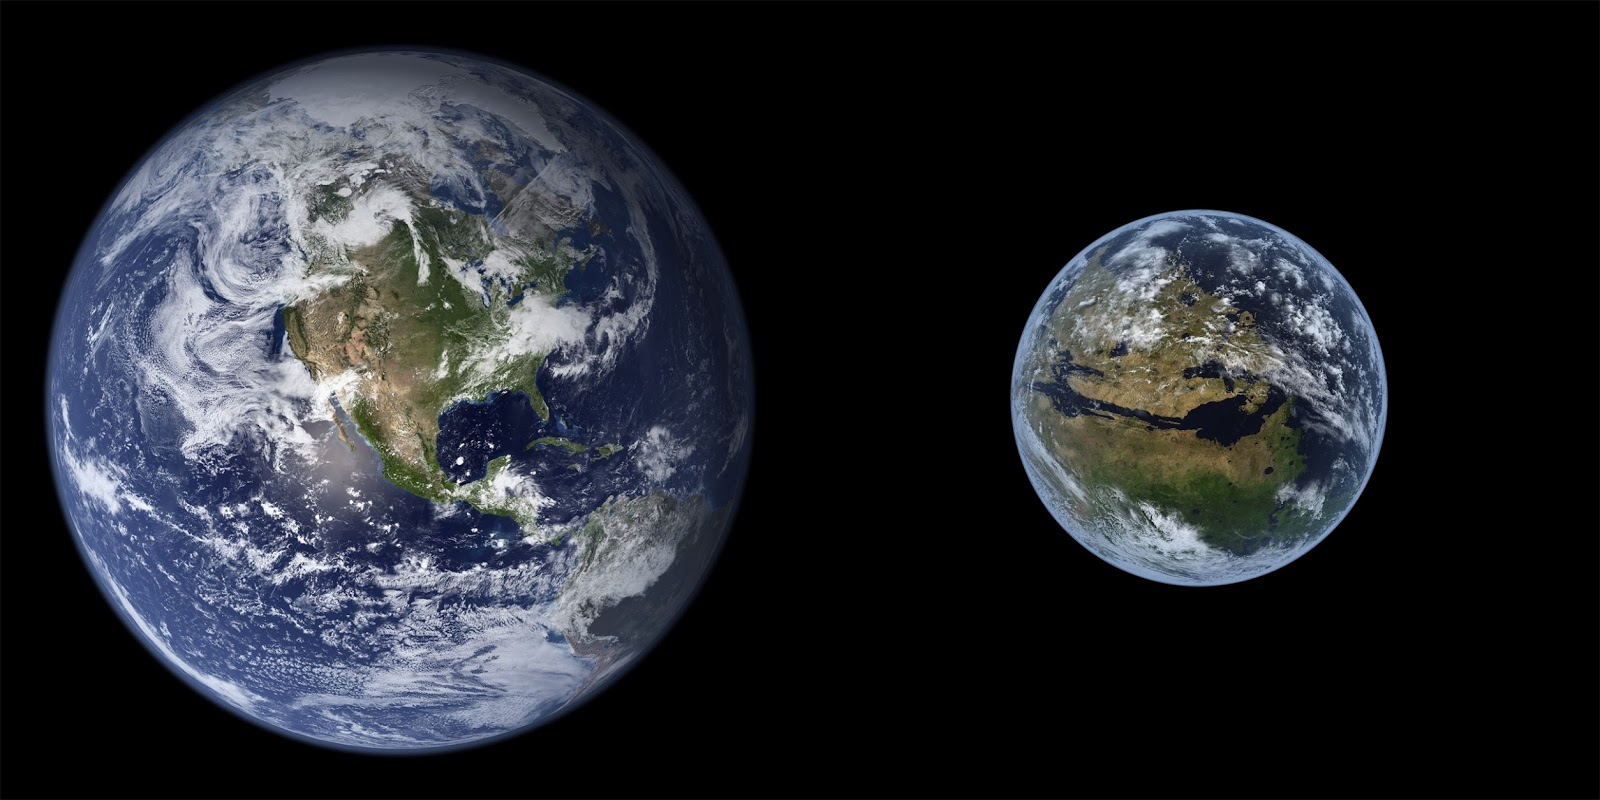 Earth and terraformed Mars to scale